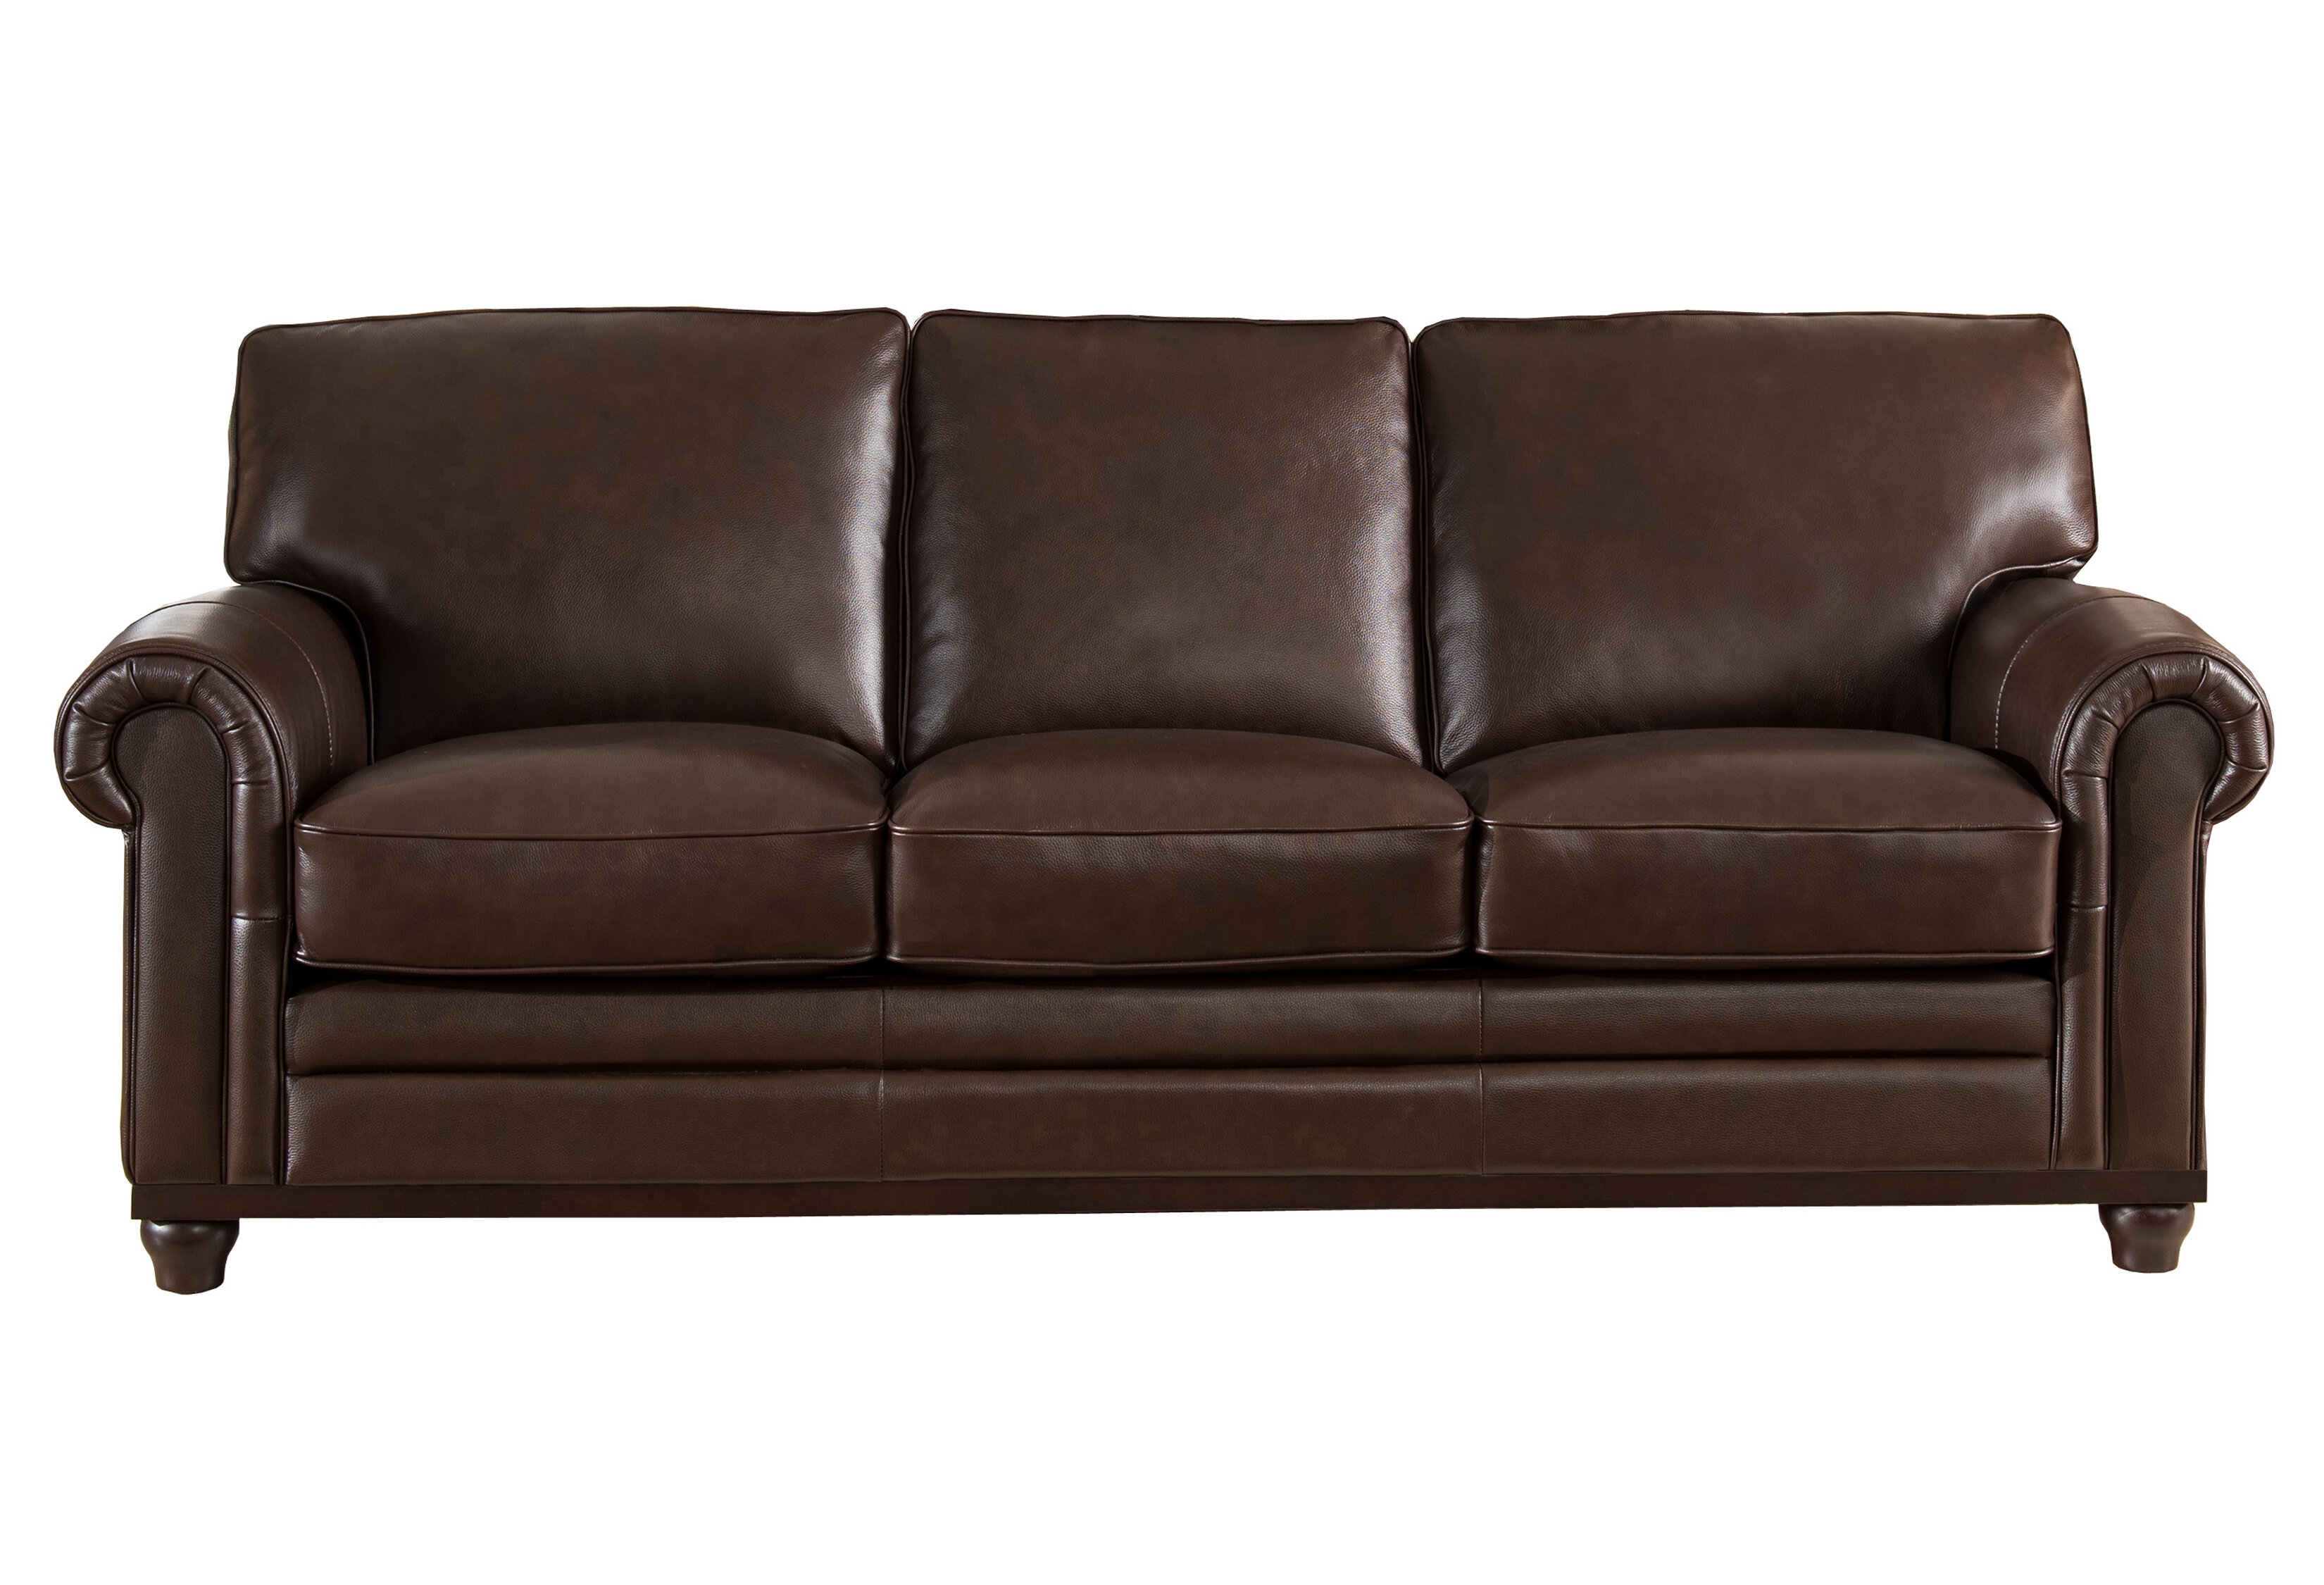 Westland And Birch Coventry Top Grain Leather Sofa Wayfair